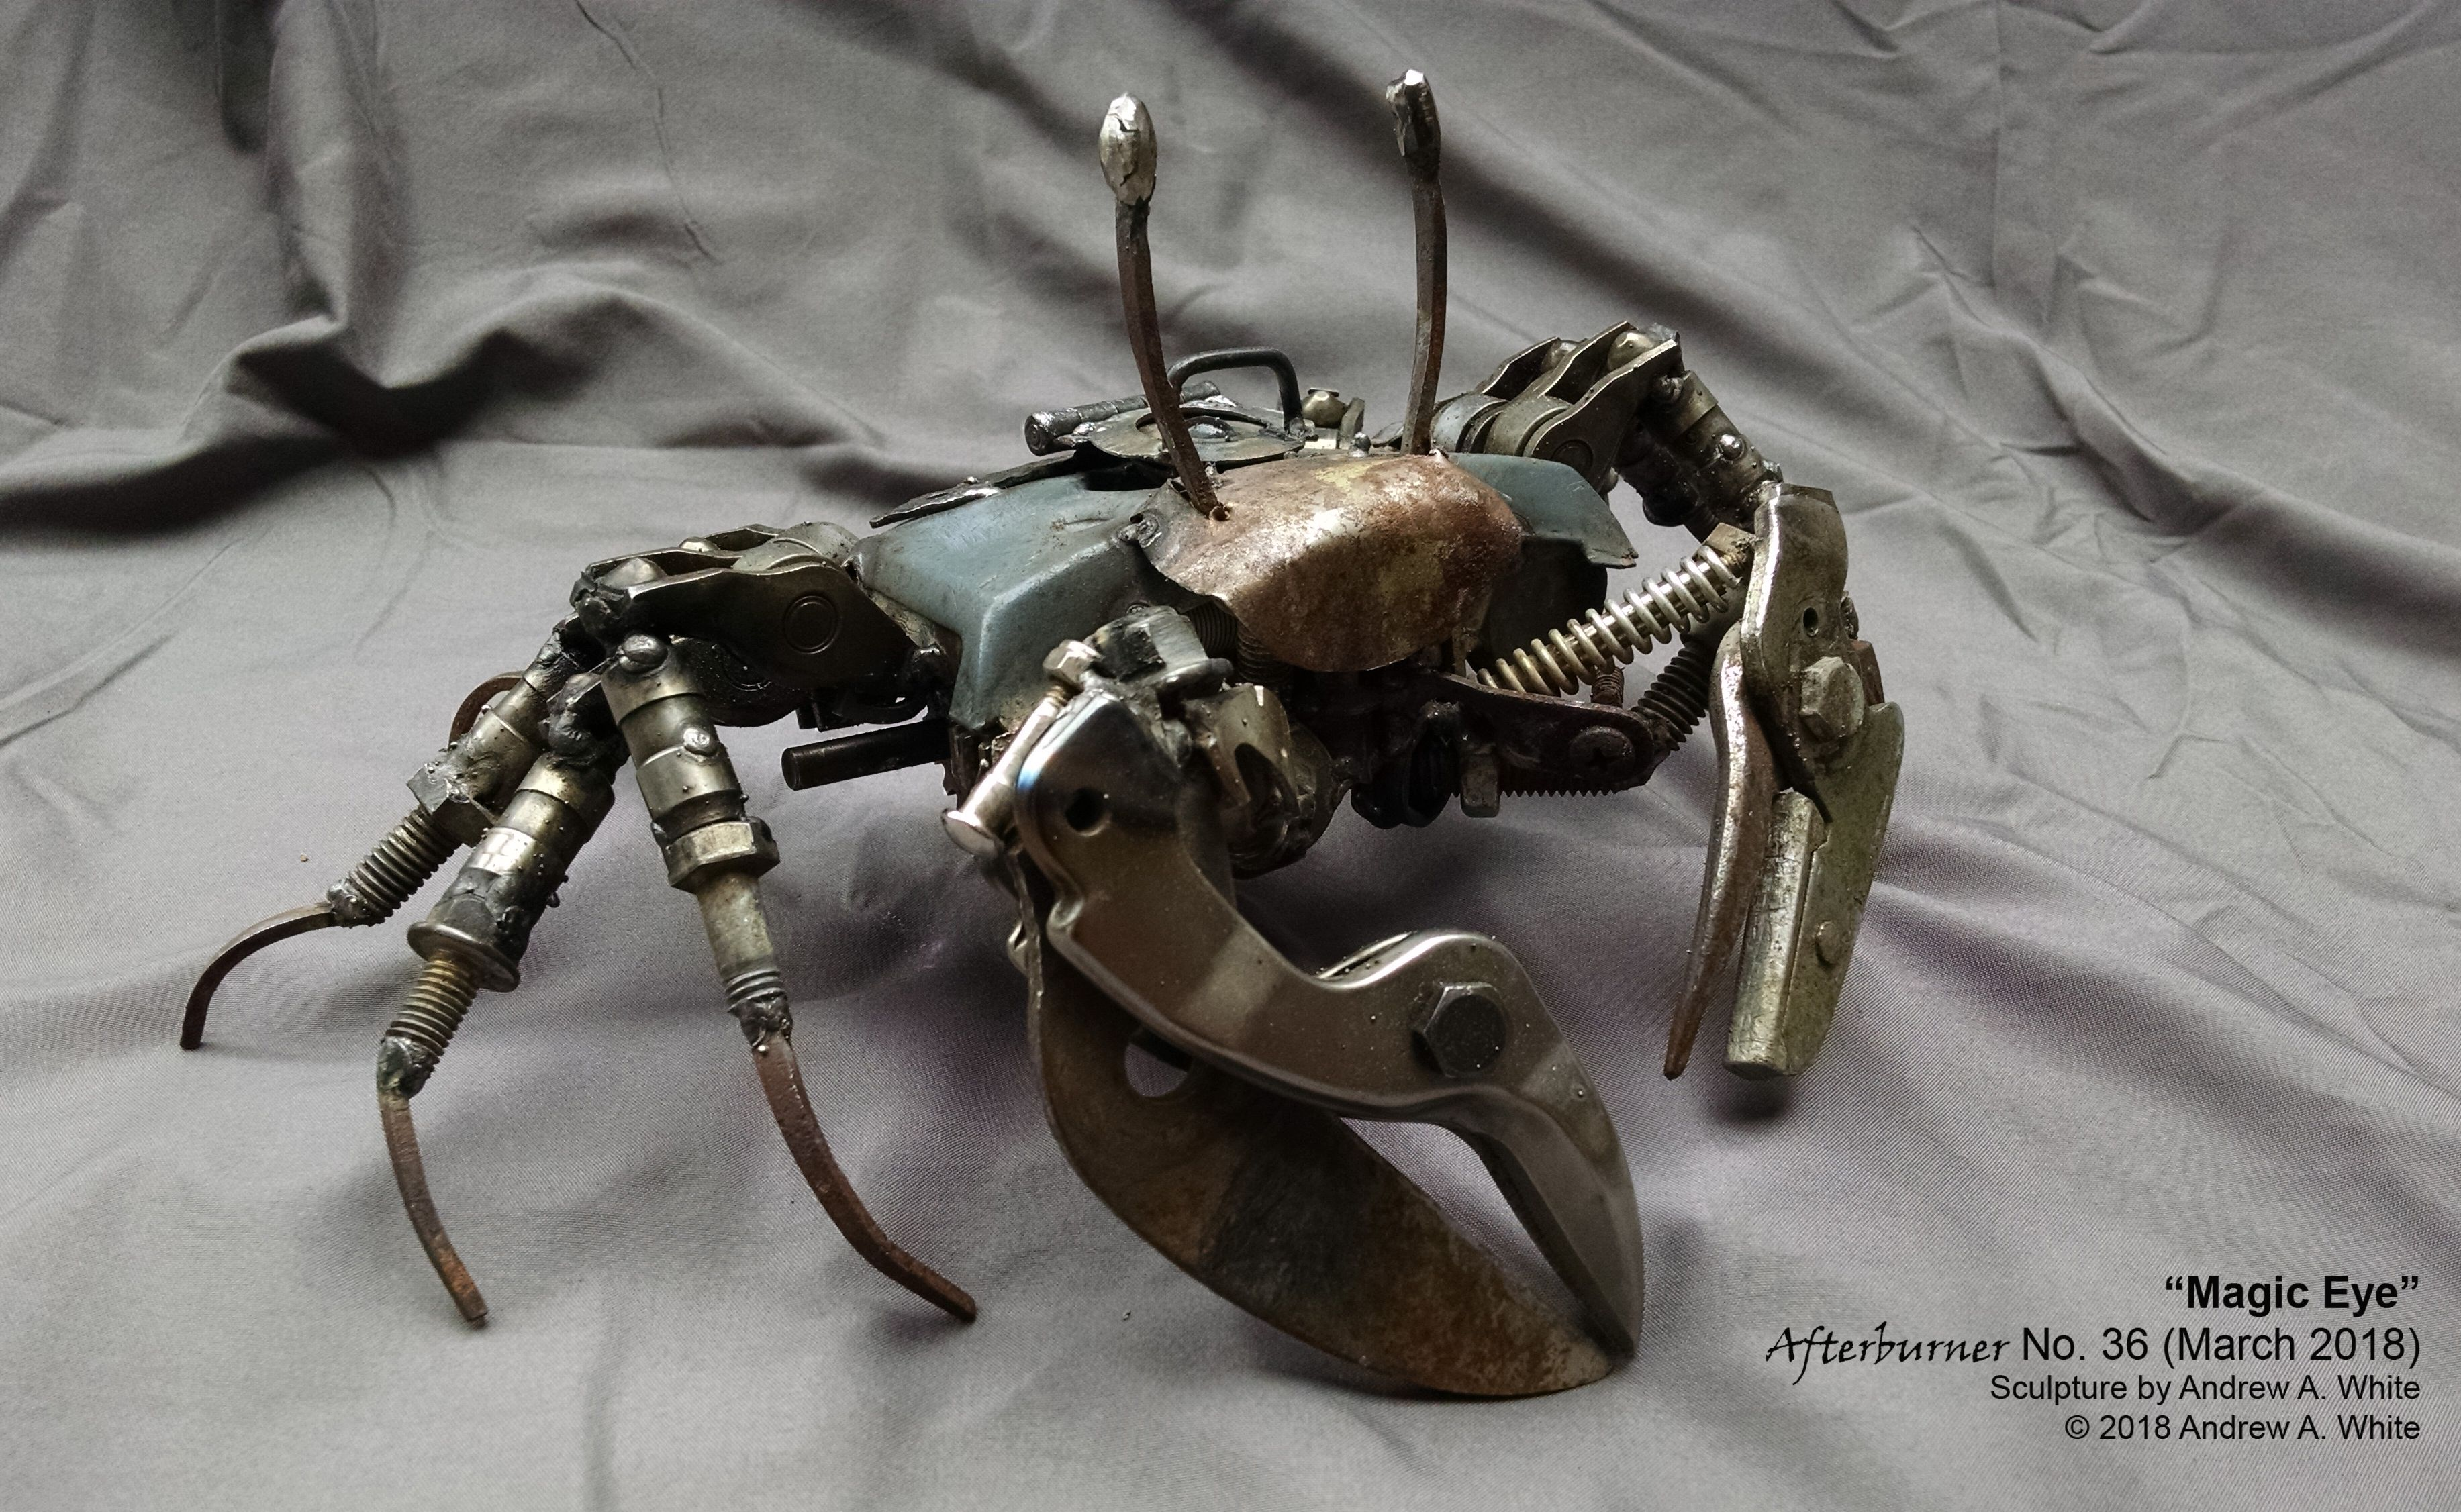 Magic Eye S Metal Art Ghost Crab Made From An Old Radio Tuner A Piece Of Vacuum Cleaner Vw Engine Parts And Other Odds Ends